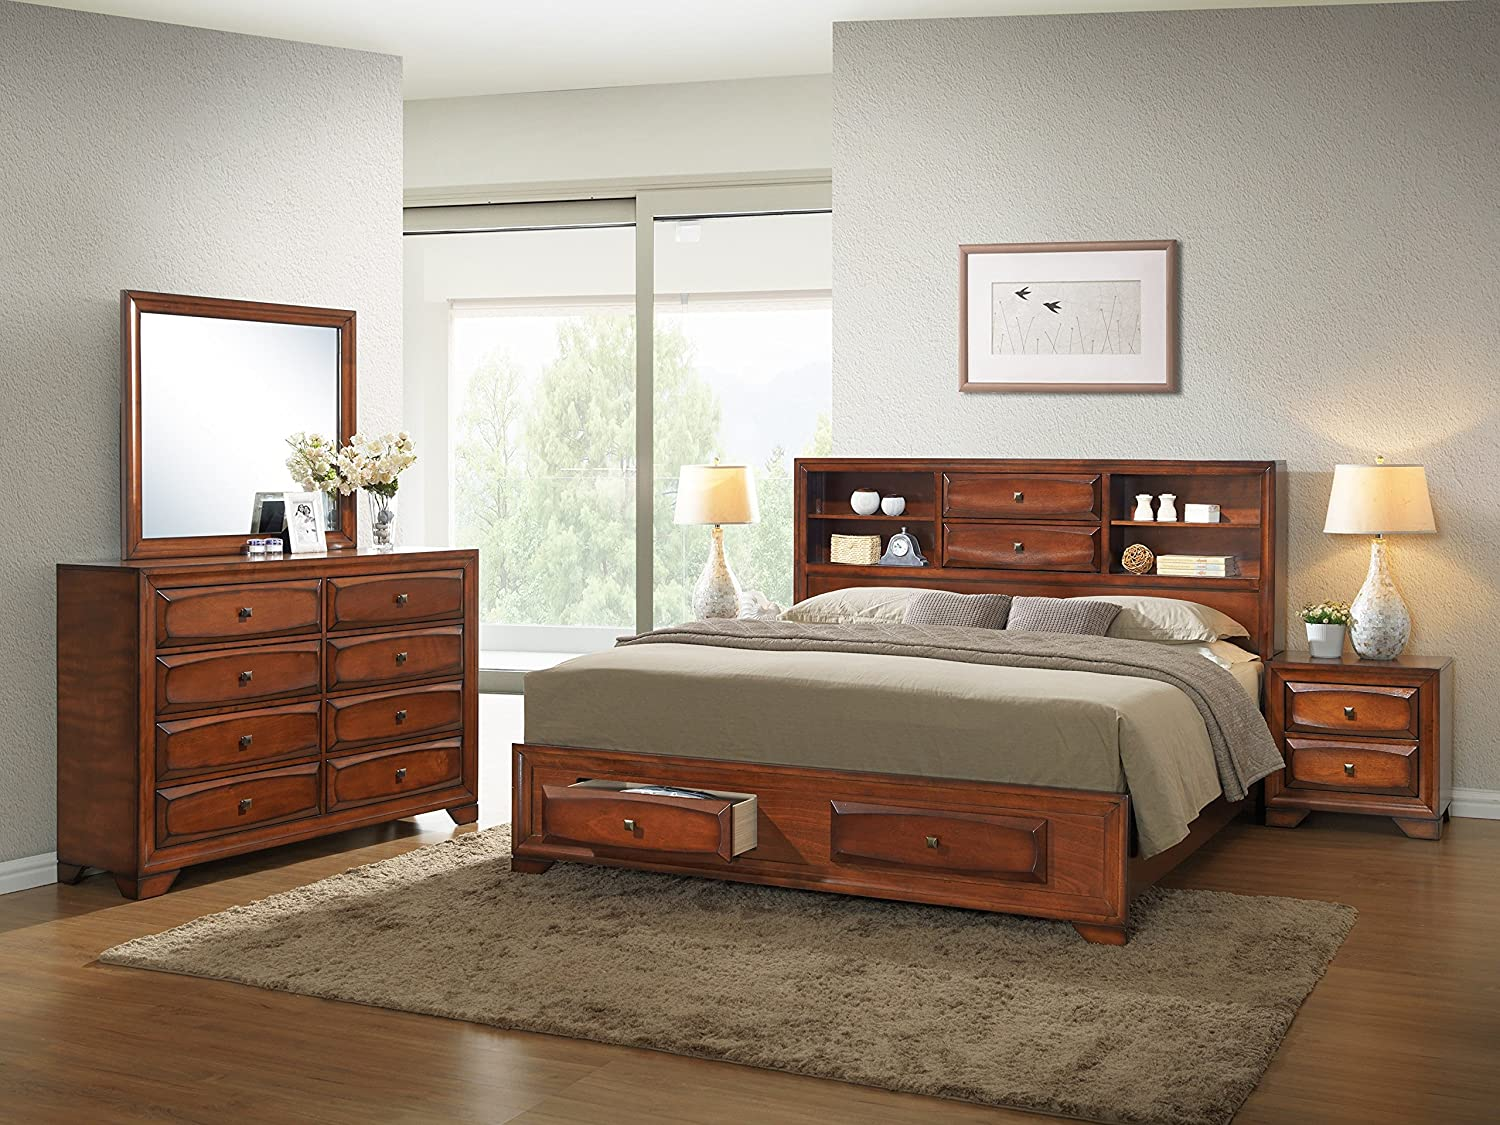 Roundhill Furniture Oakland 139 Antique Oak Finish Wood Bed Room Set Queen Storage Bed Night Stand Mirror Dresser